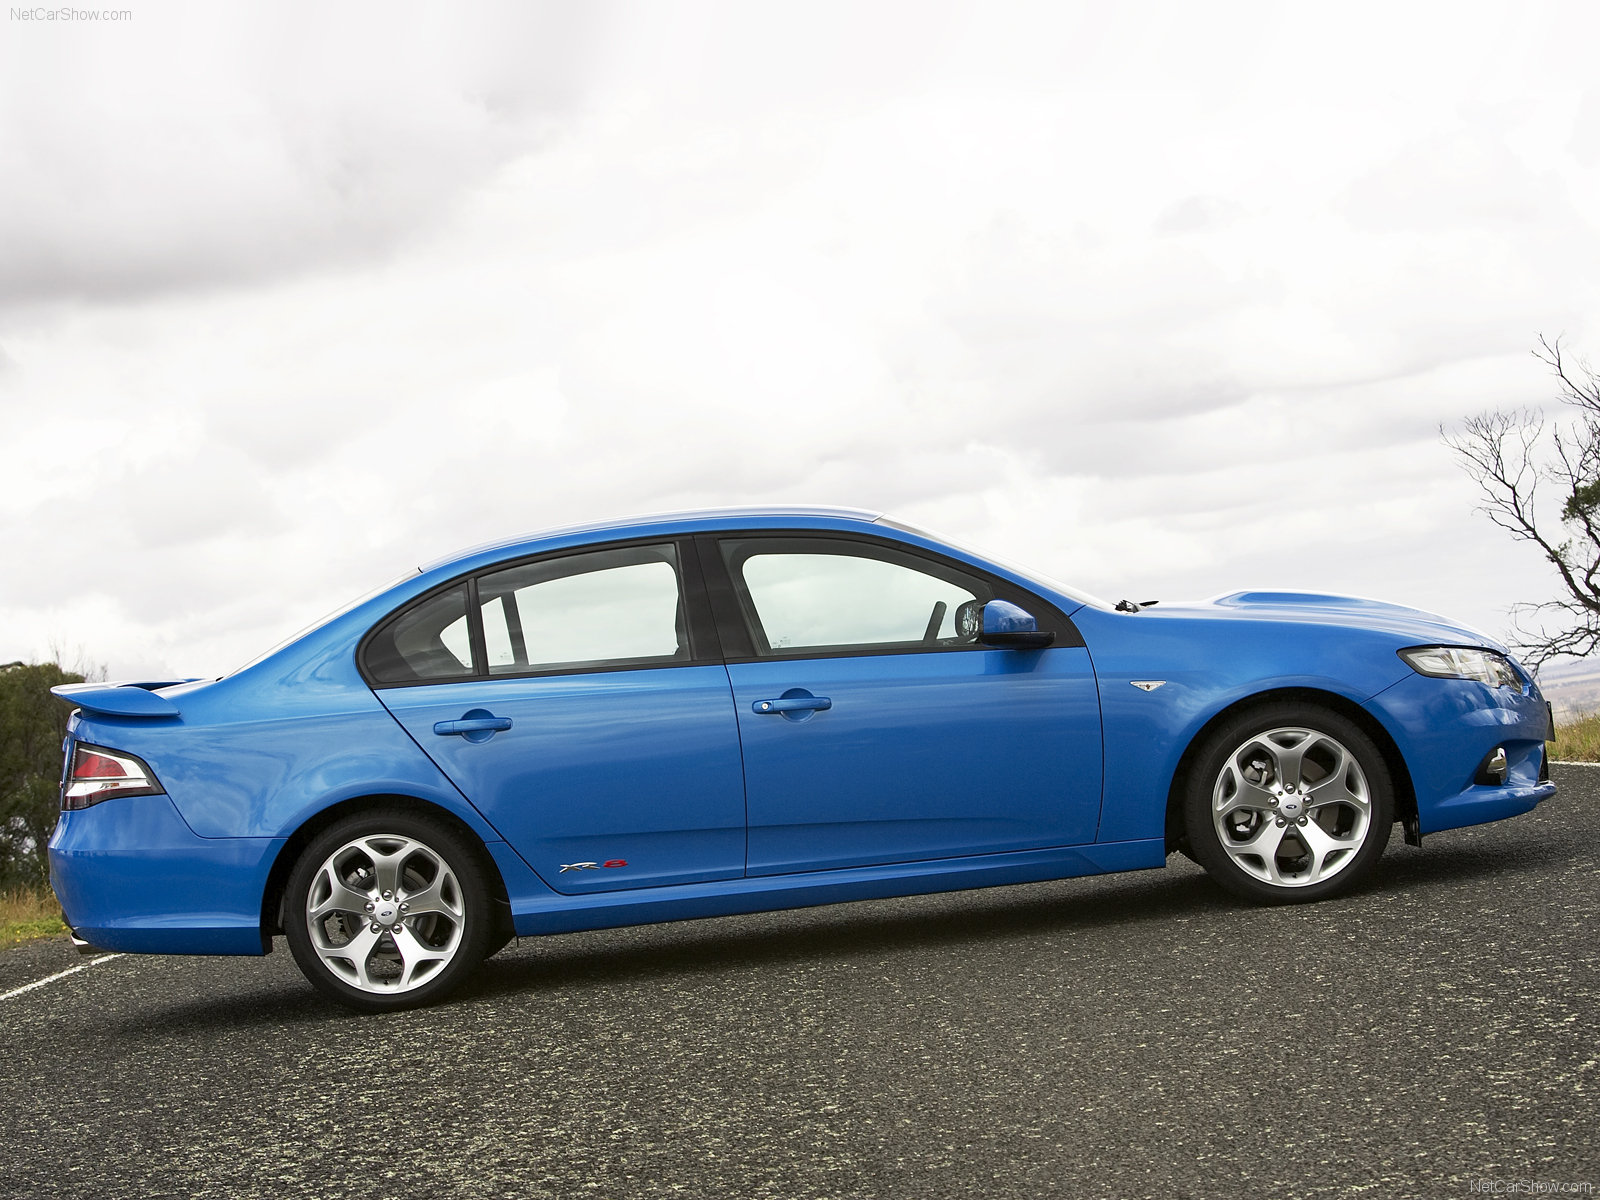 Ford FG Falcon XR6 photos - PhotoGallery with 20 pics ...